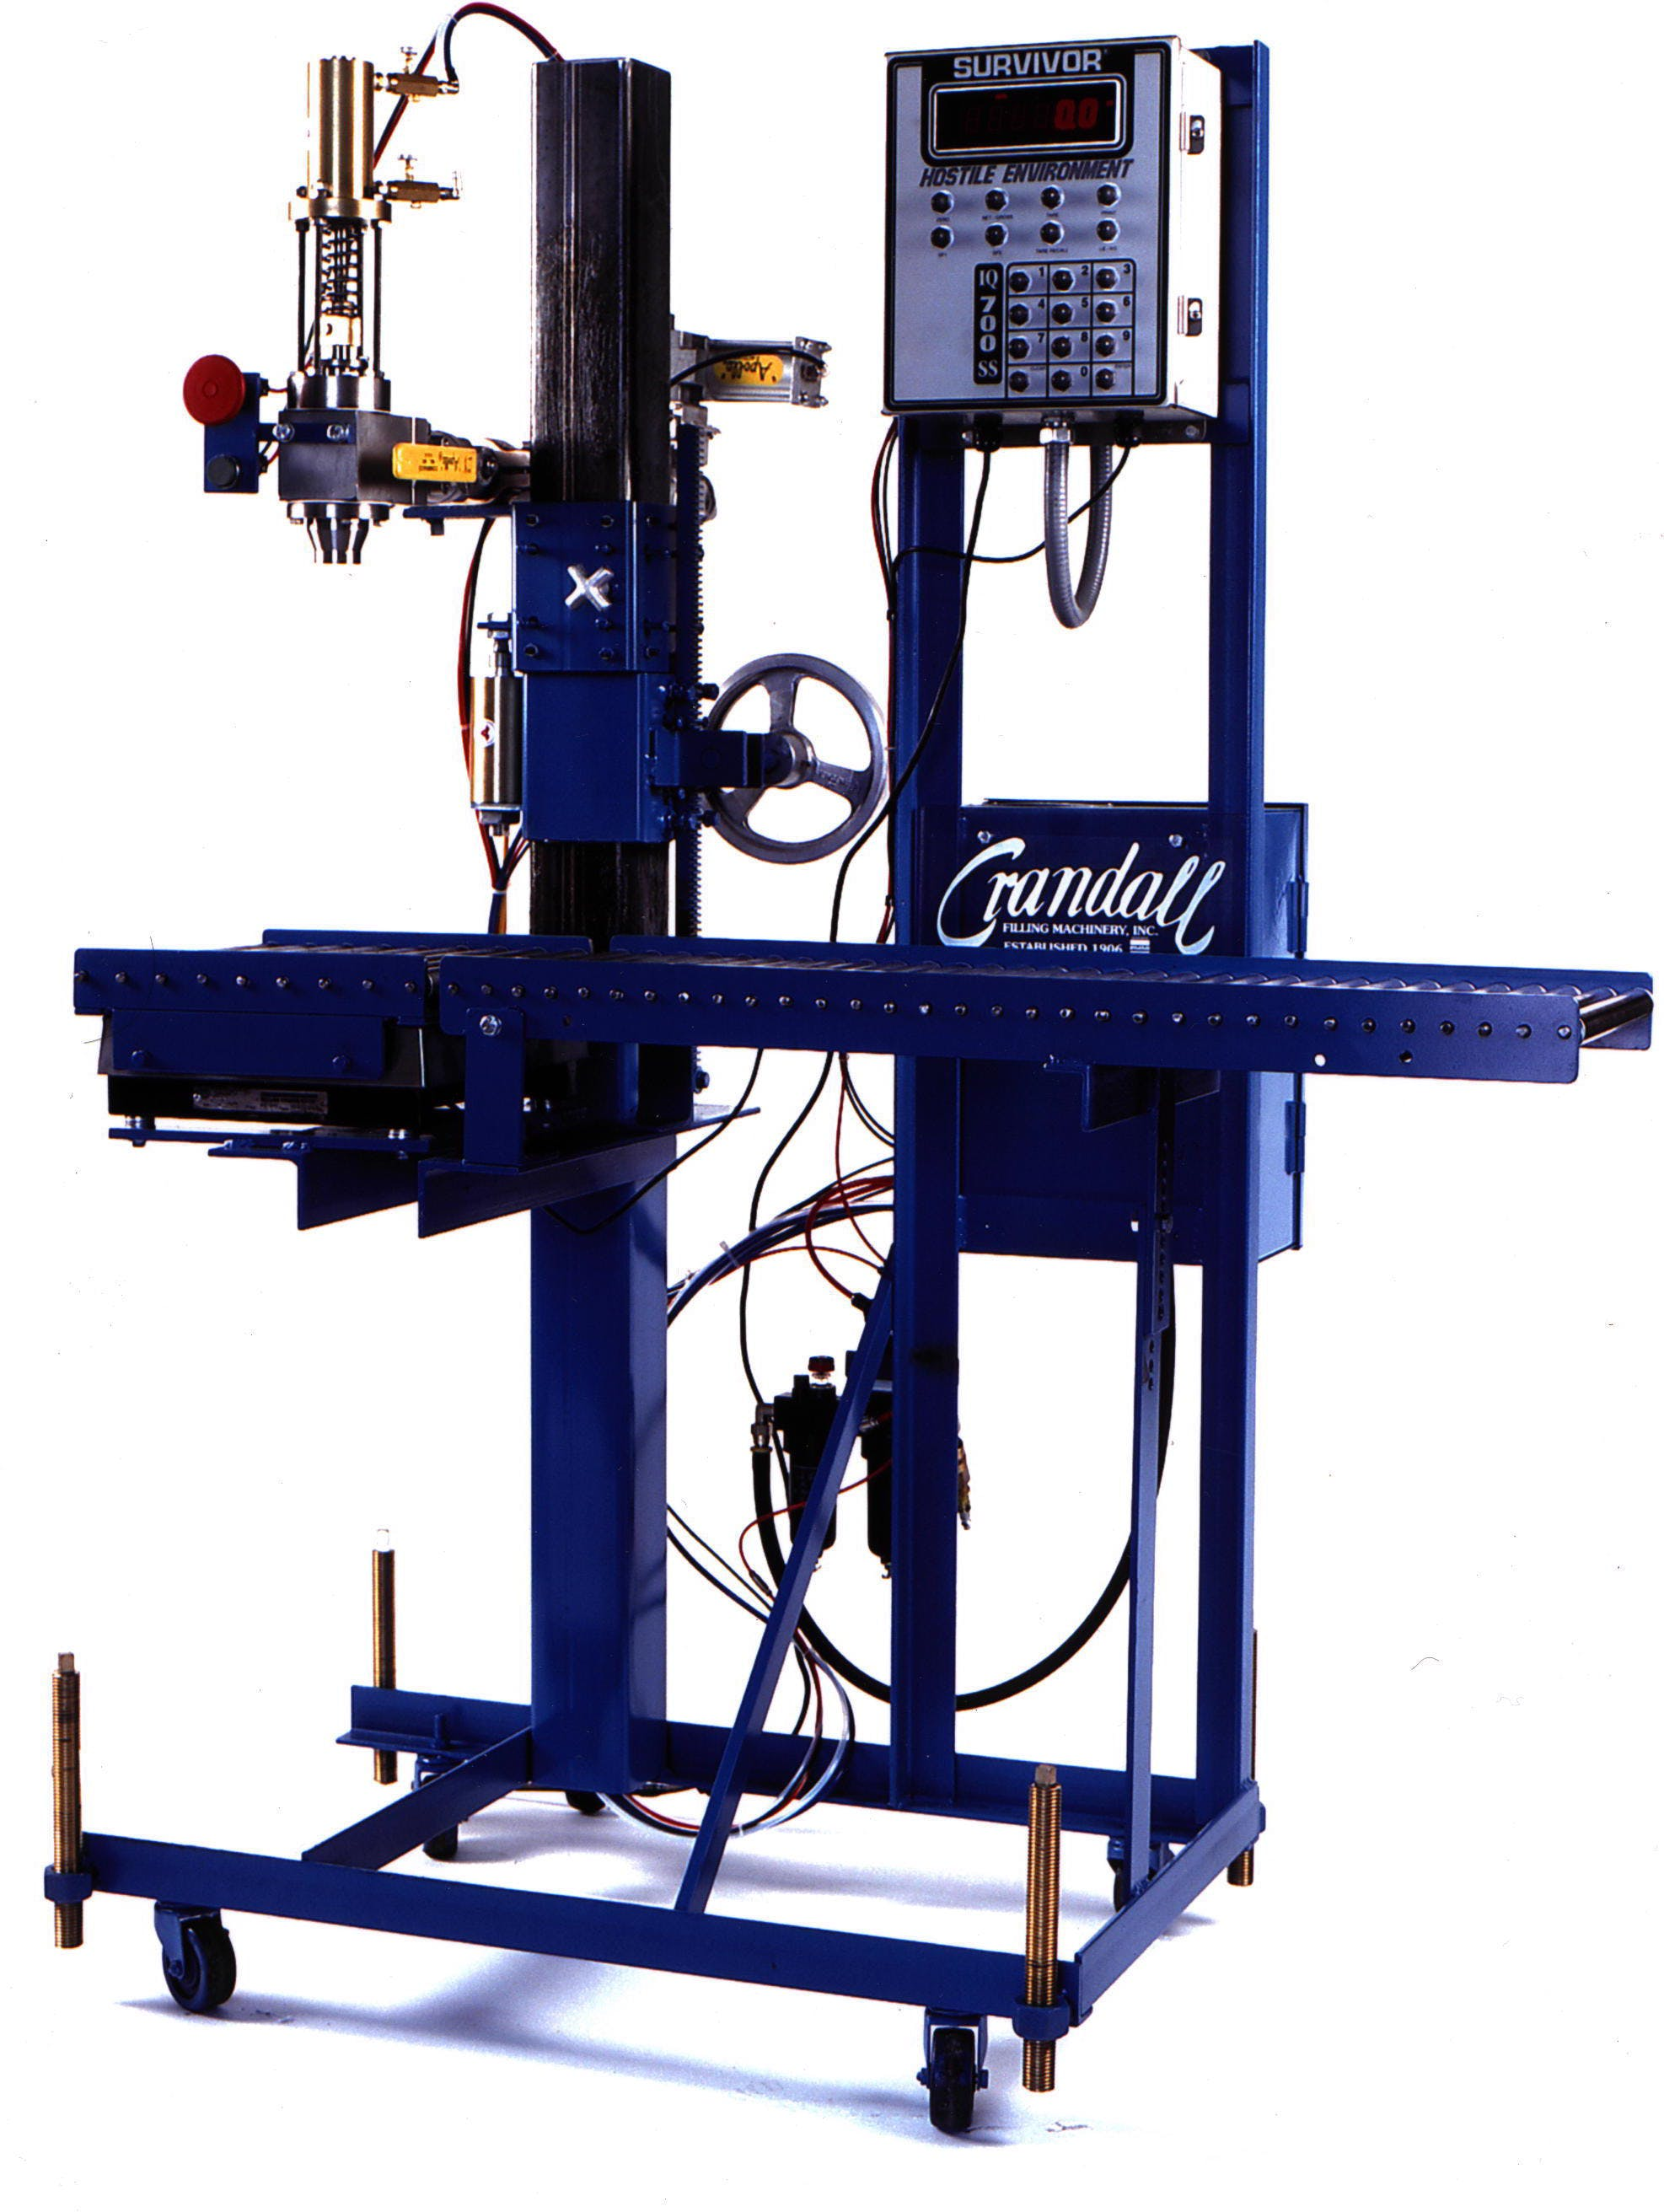 A1/25PEX Bottle filler sold by Crandall Filling Machinery, Inc.